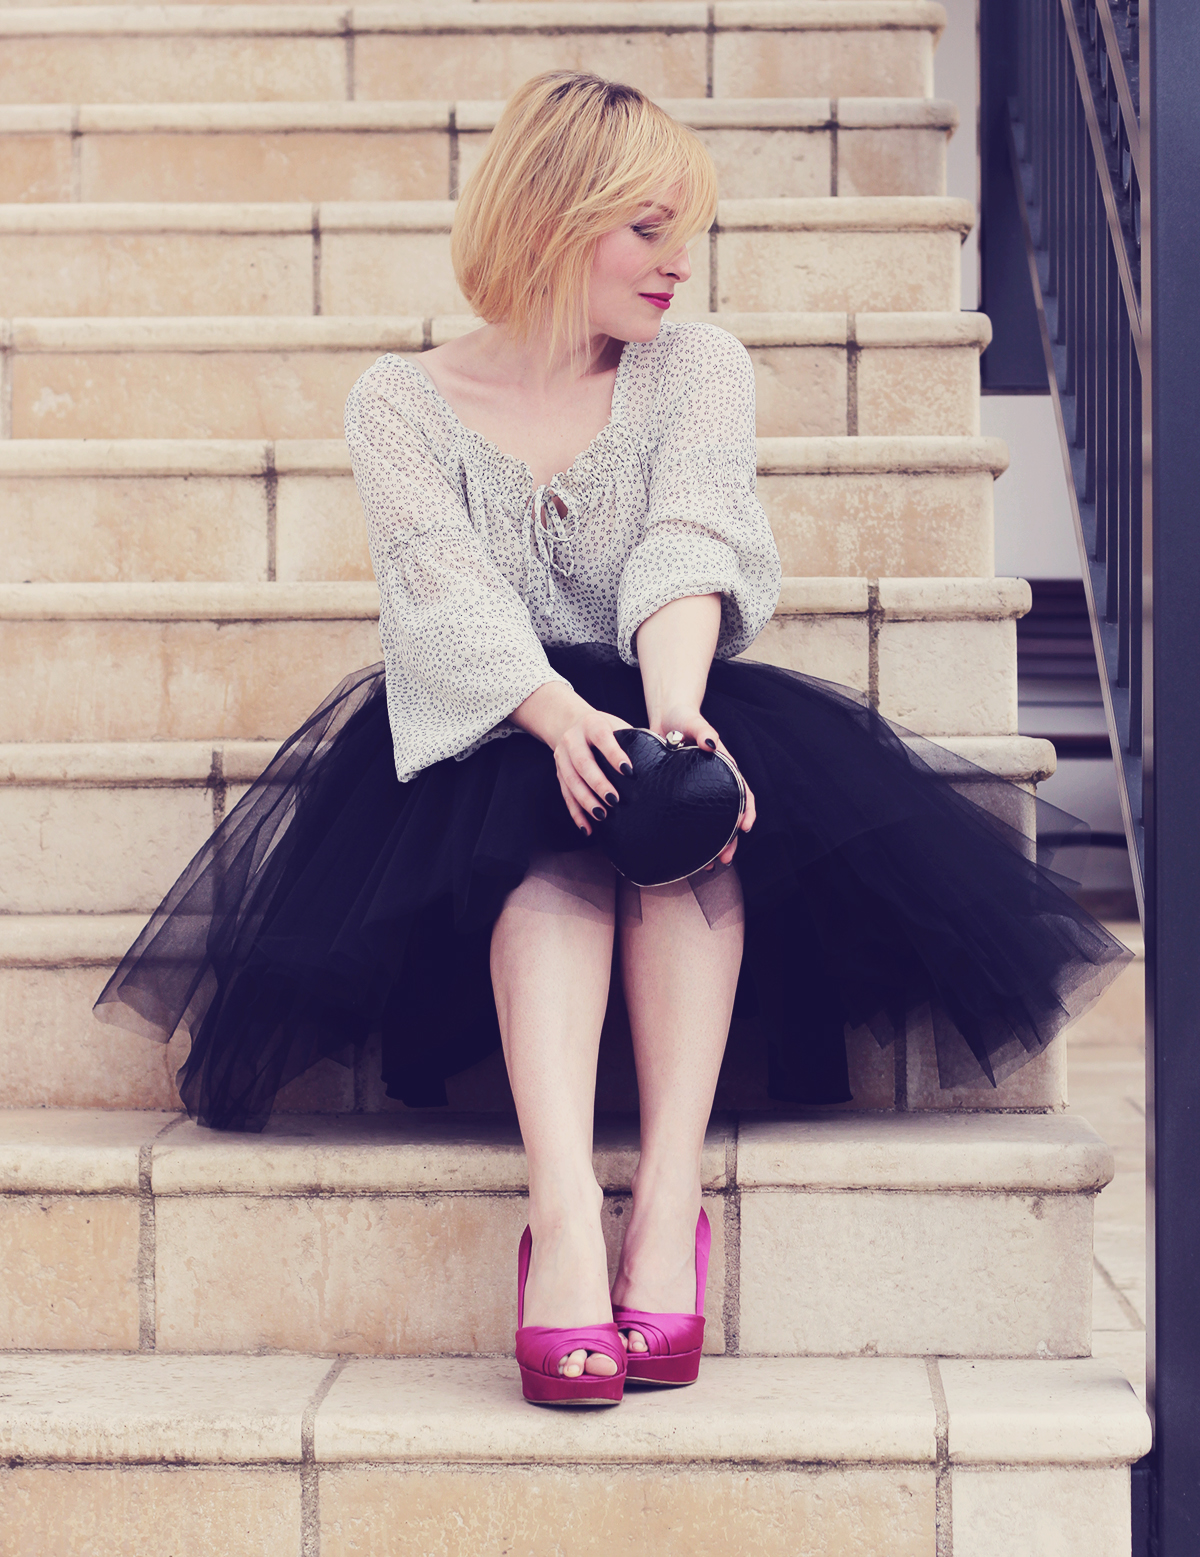 the tulle skirt and heart shaped clutch with pink pumps